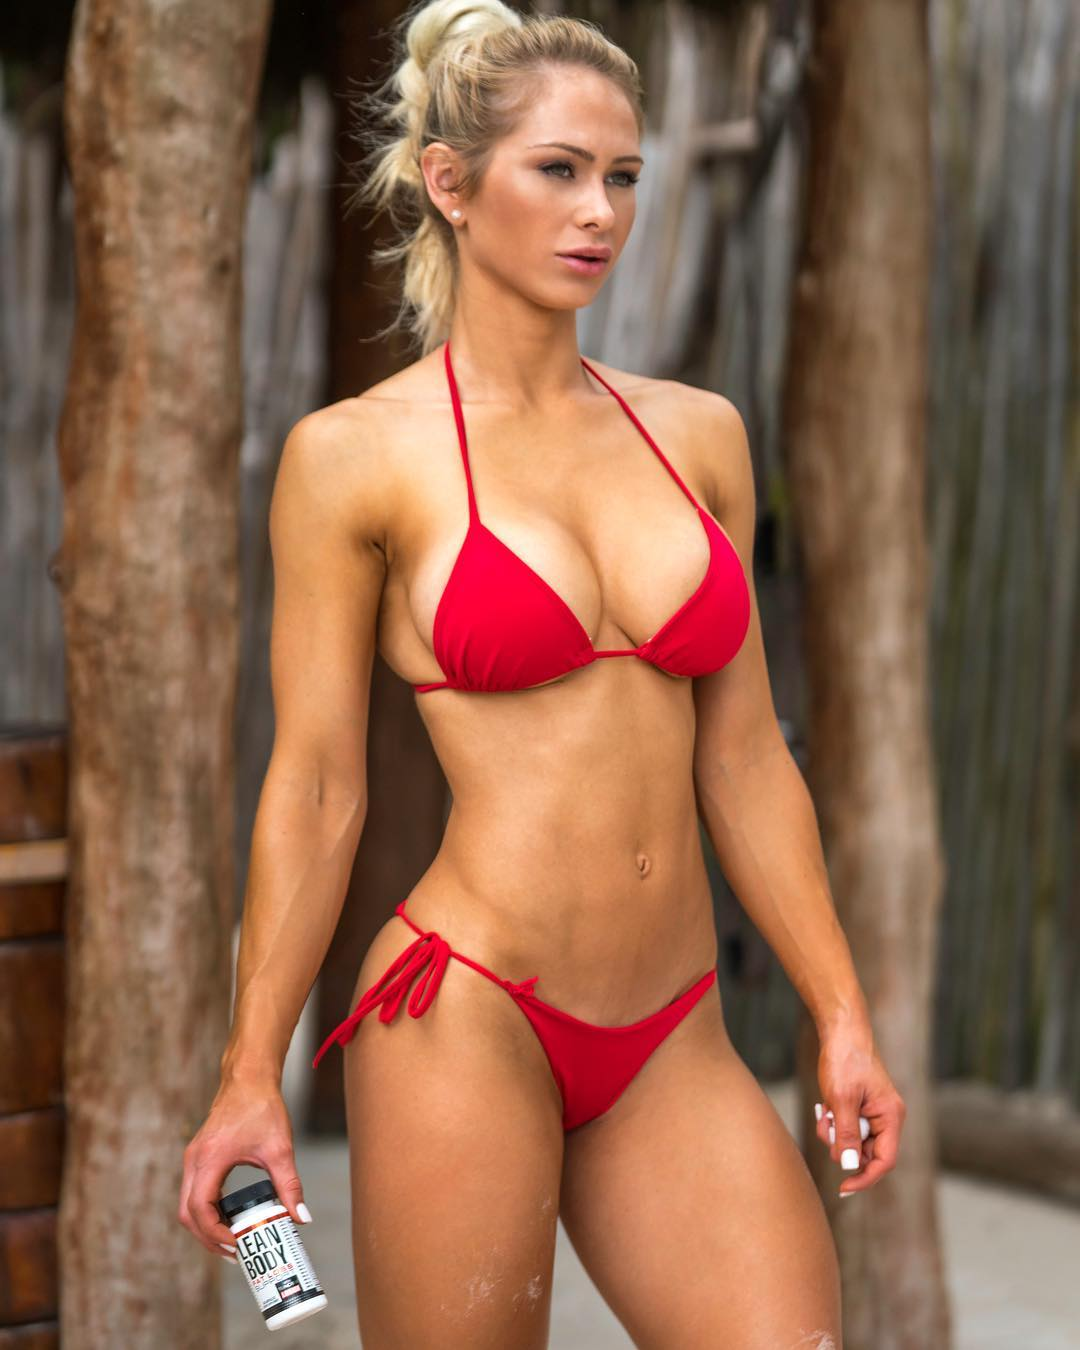 5b6afc2453acd Most beautiful female fitness athletes of social media